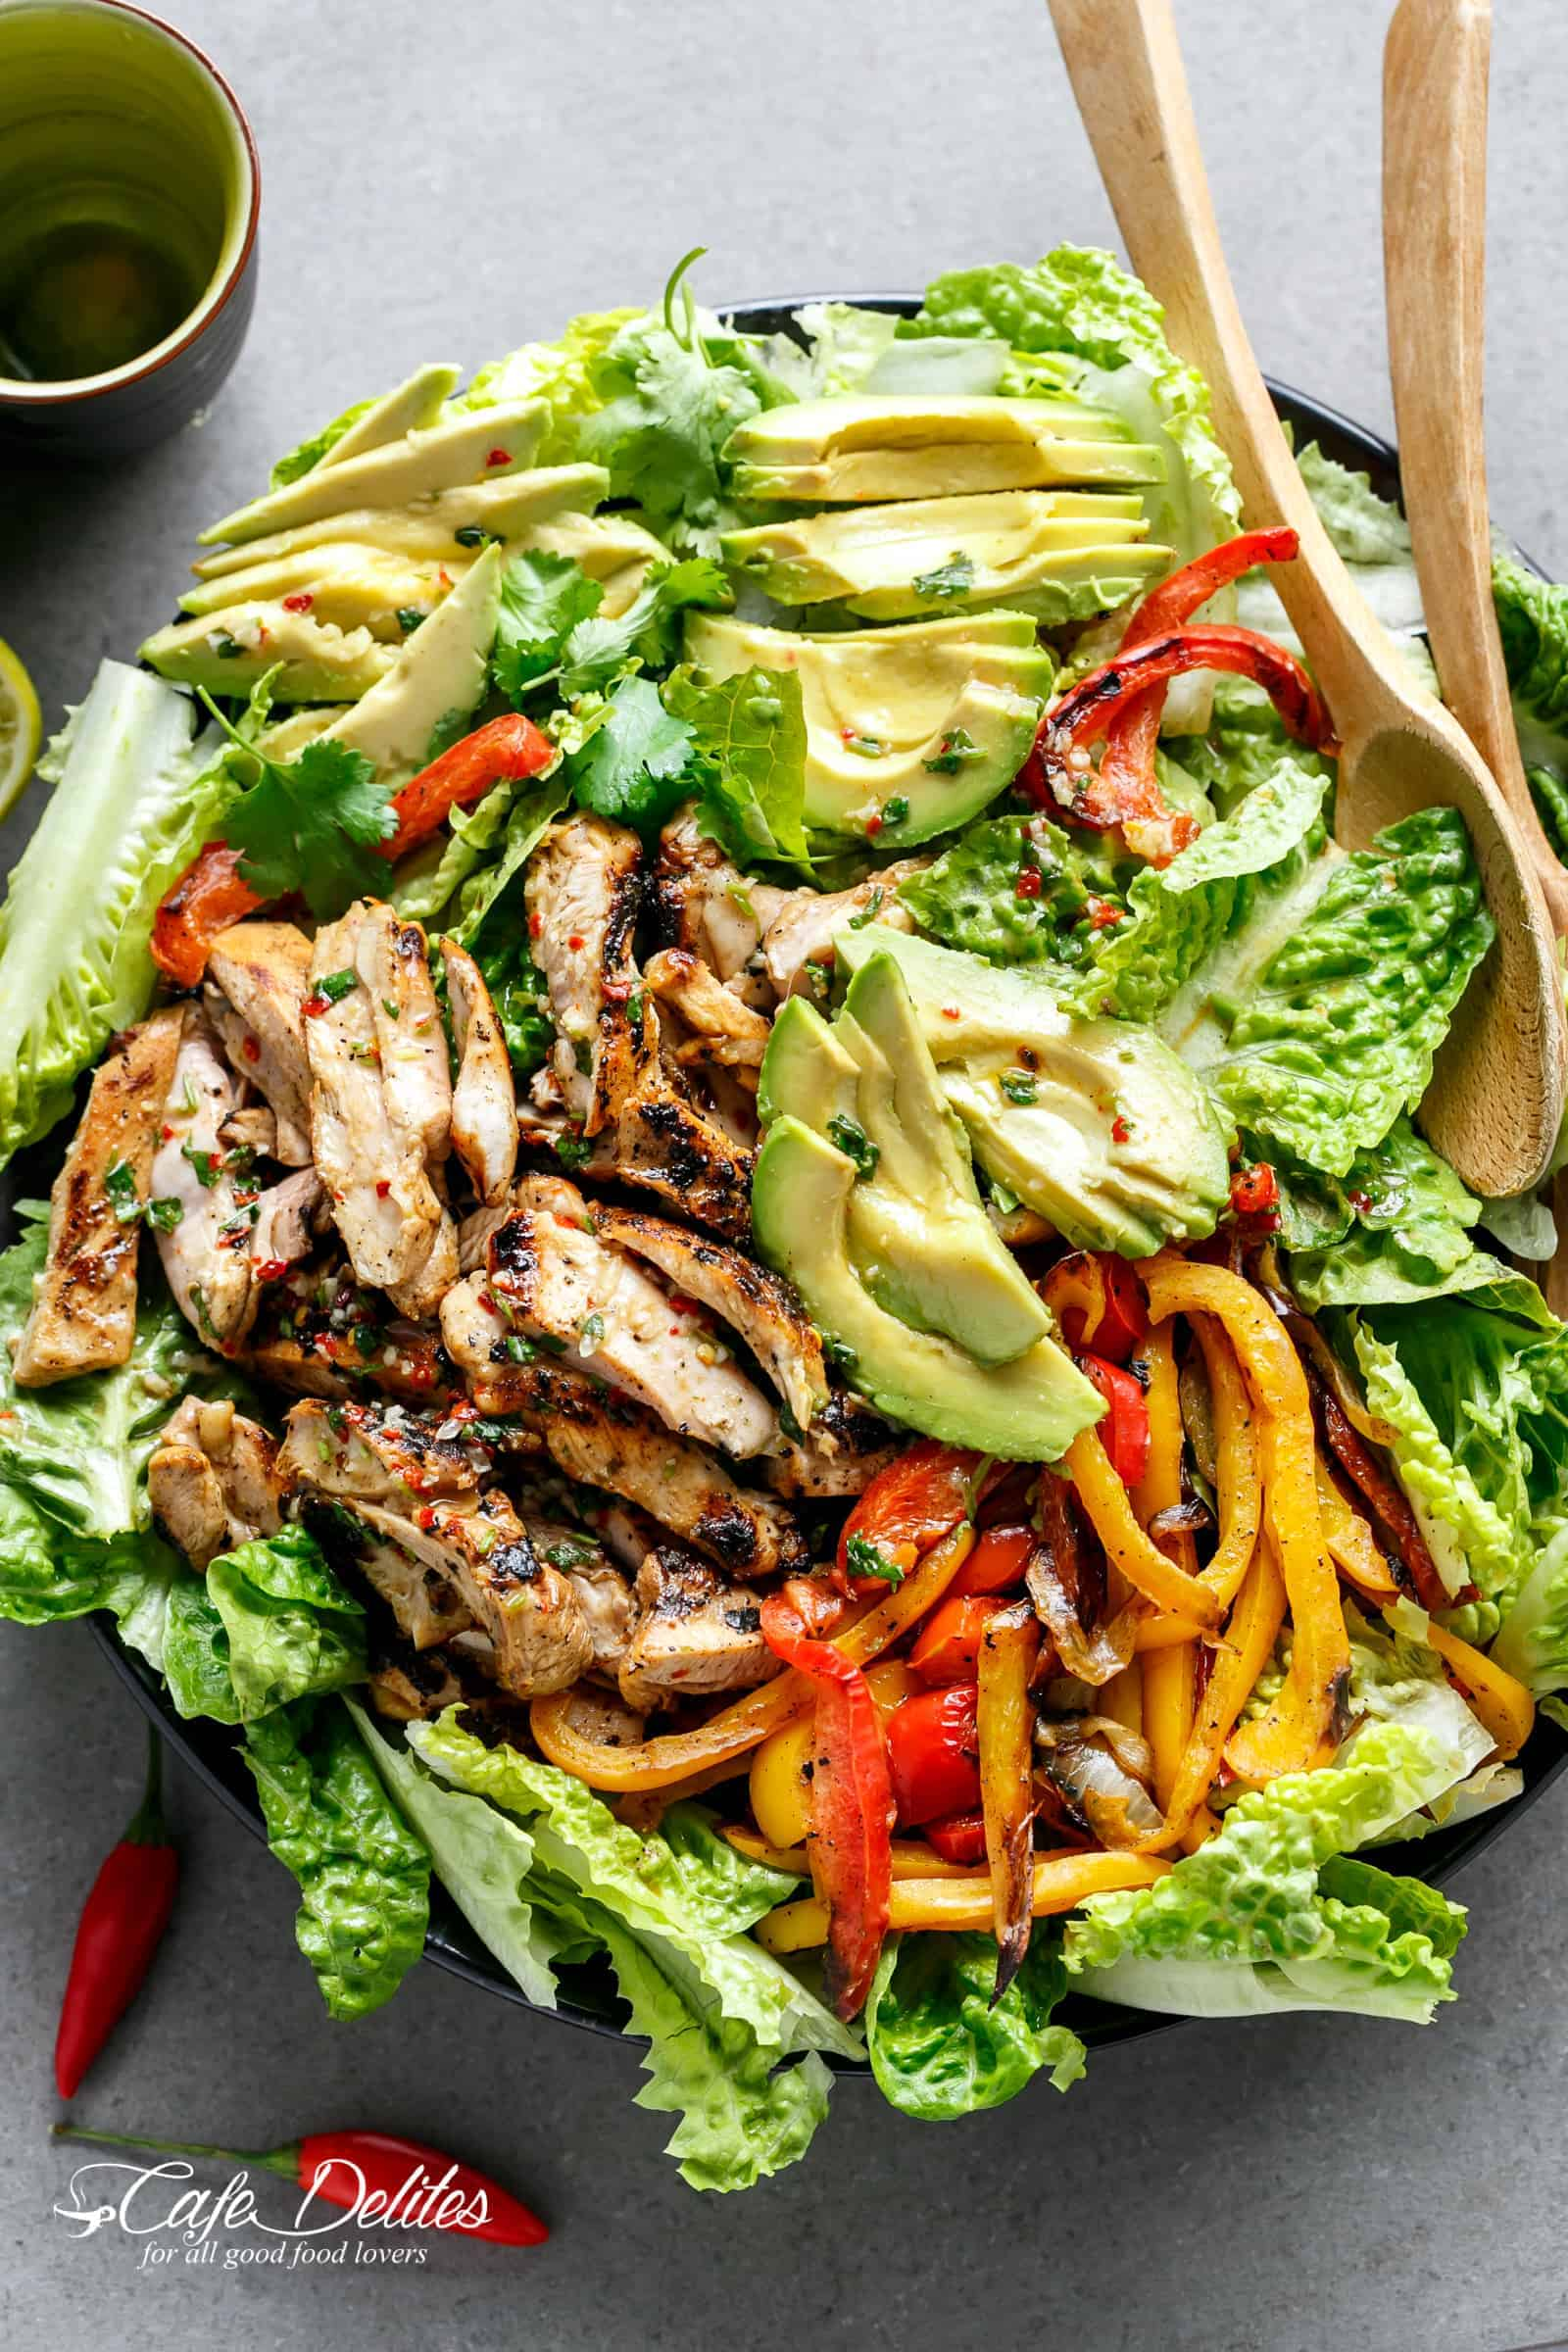 Grilled Chili Lime Chicken Fajita Salad from cafedelites.com on foodiecrush.com